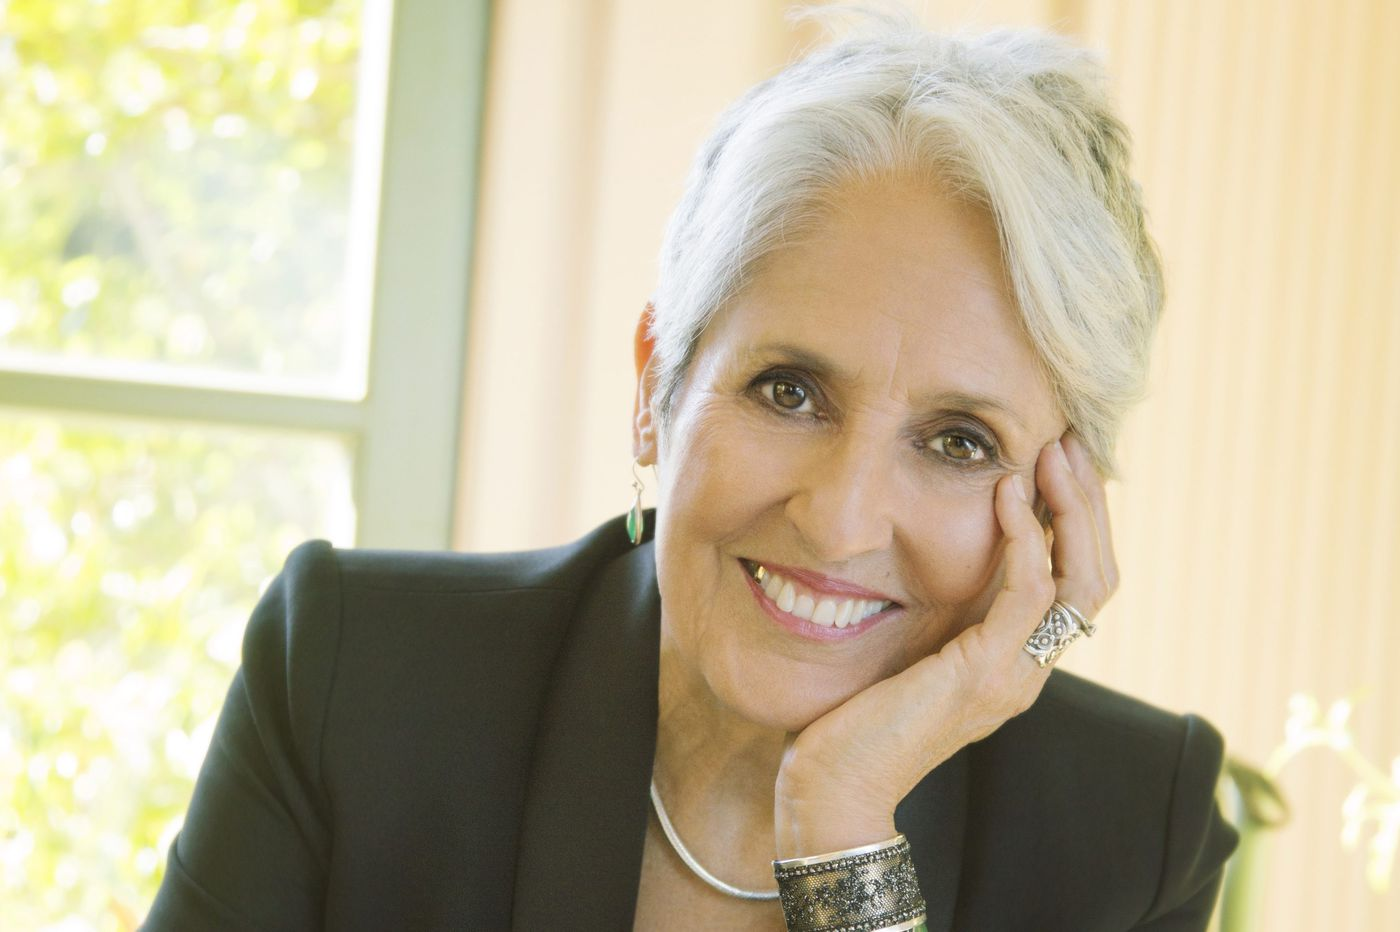 Joan Baez on retiring from touring, Bob Dylan, and why we need a new 'We Shall Overcome'